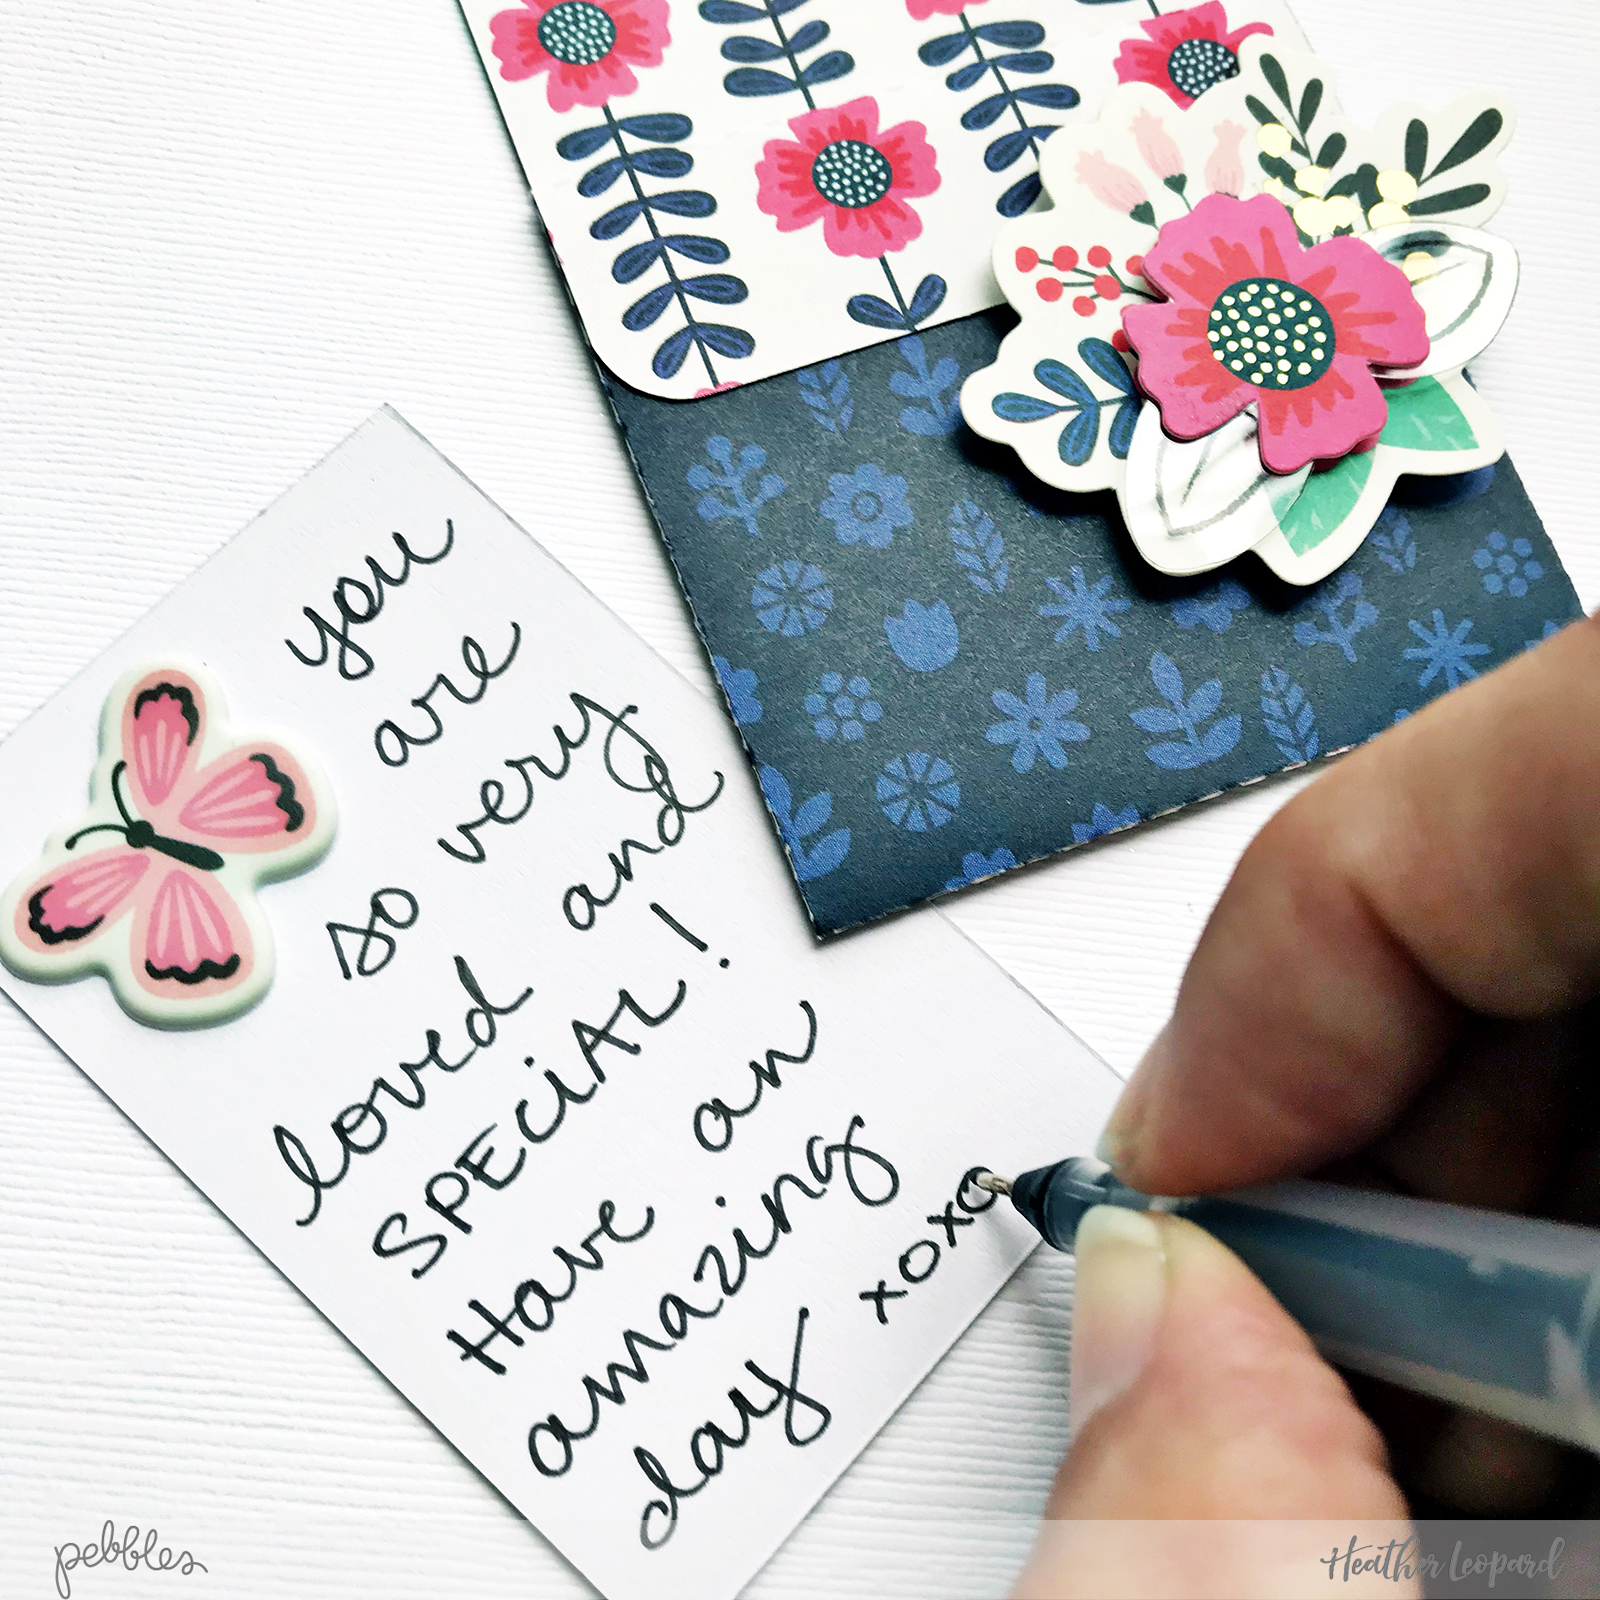 School Lunch Notes by @HeatherLeopard using @pebblesinc #MyBrightLife collection #backtoschool #lunchnotes #cards #card